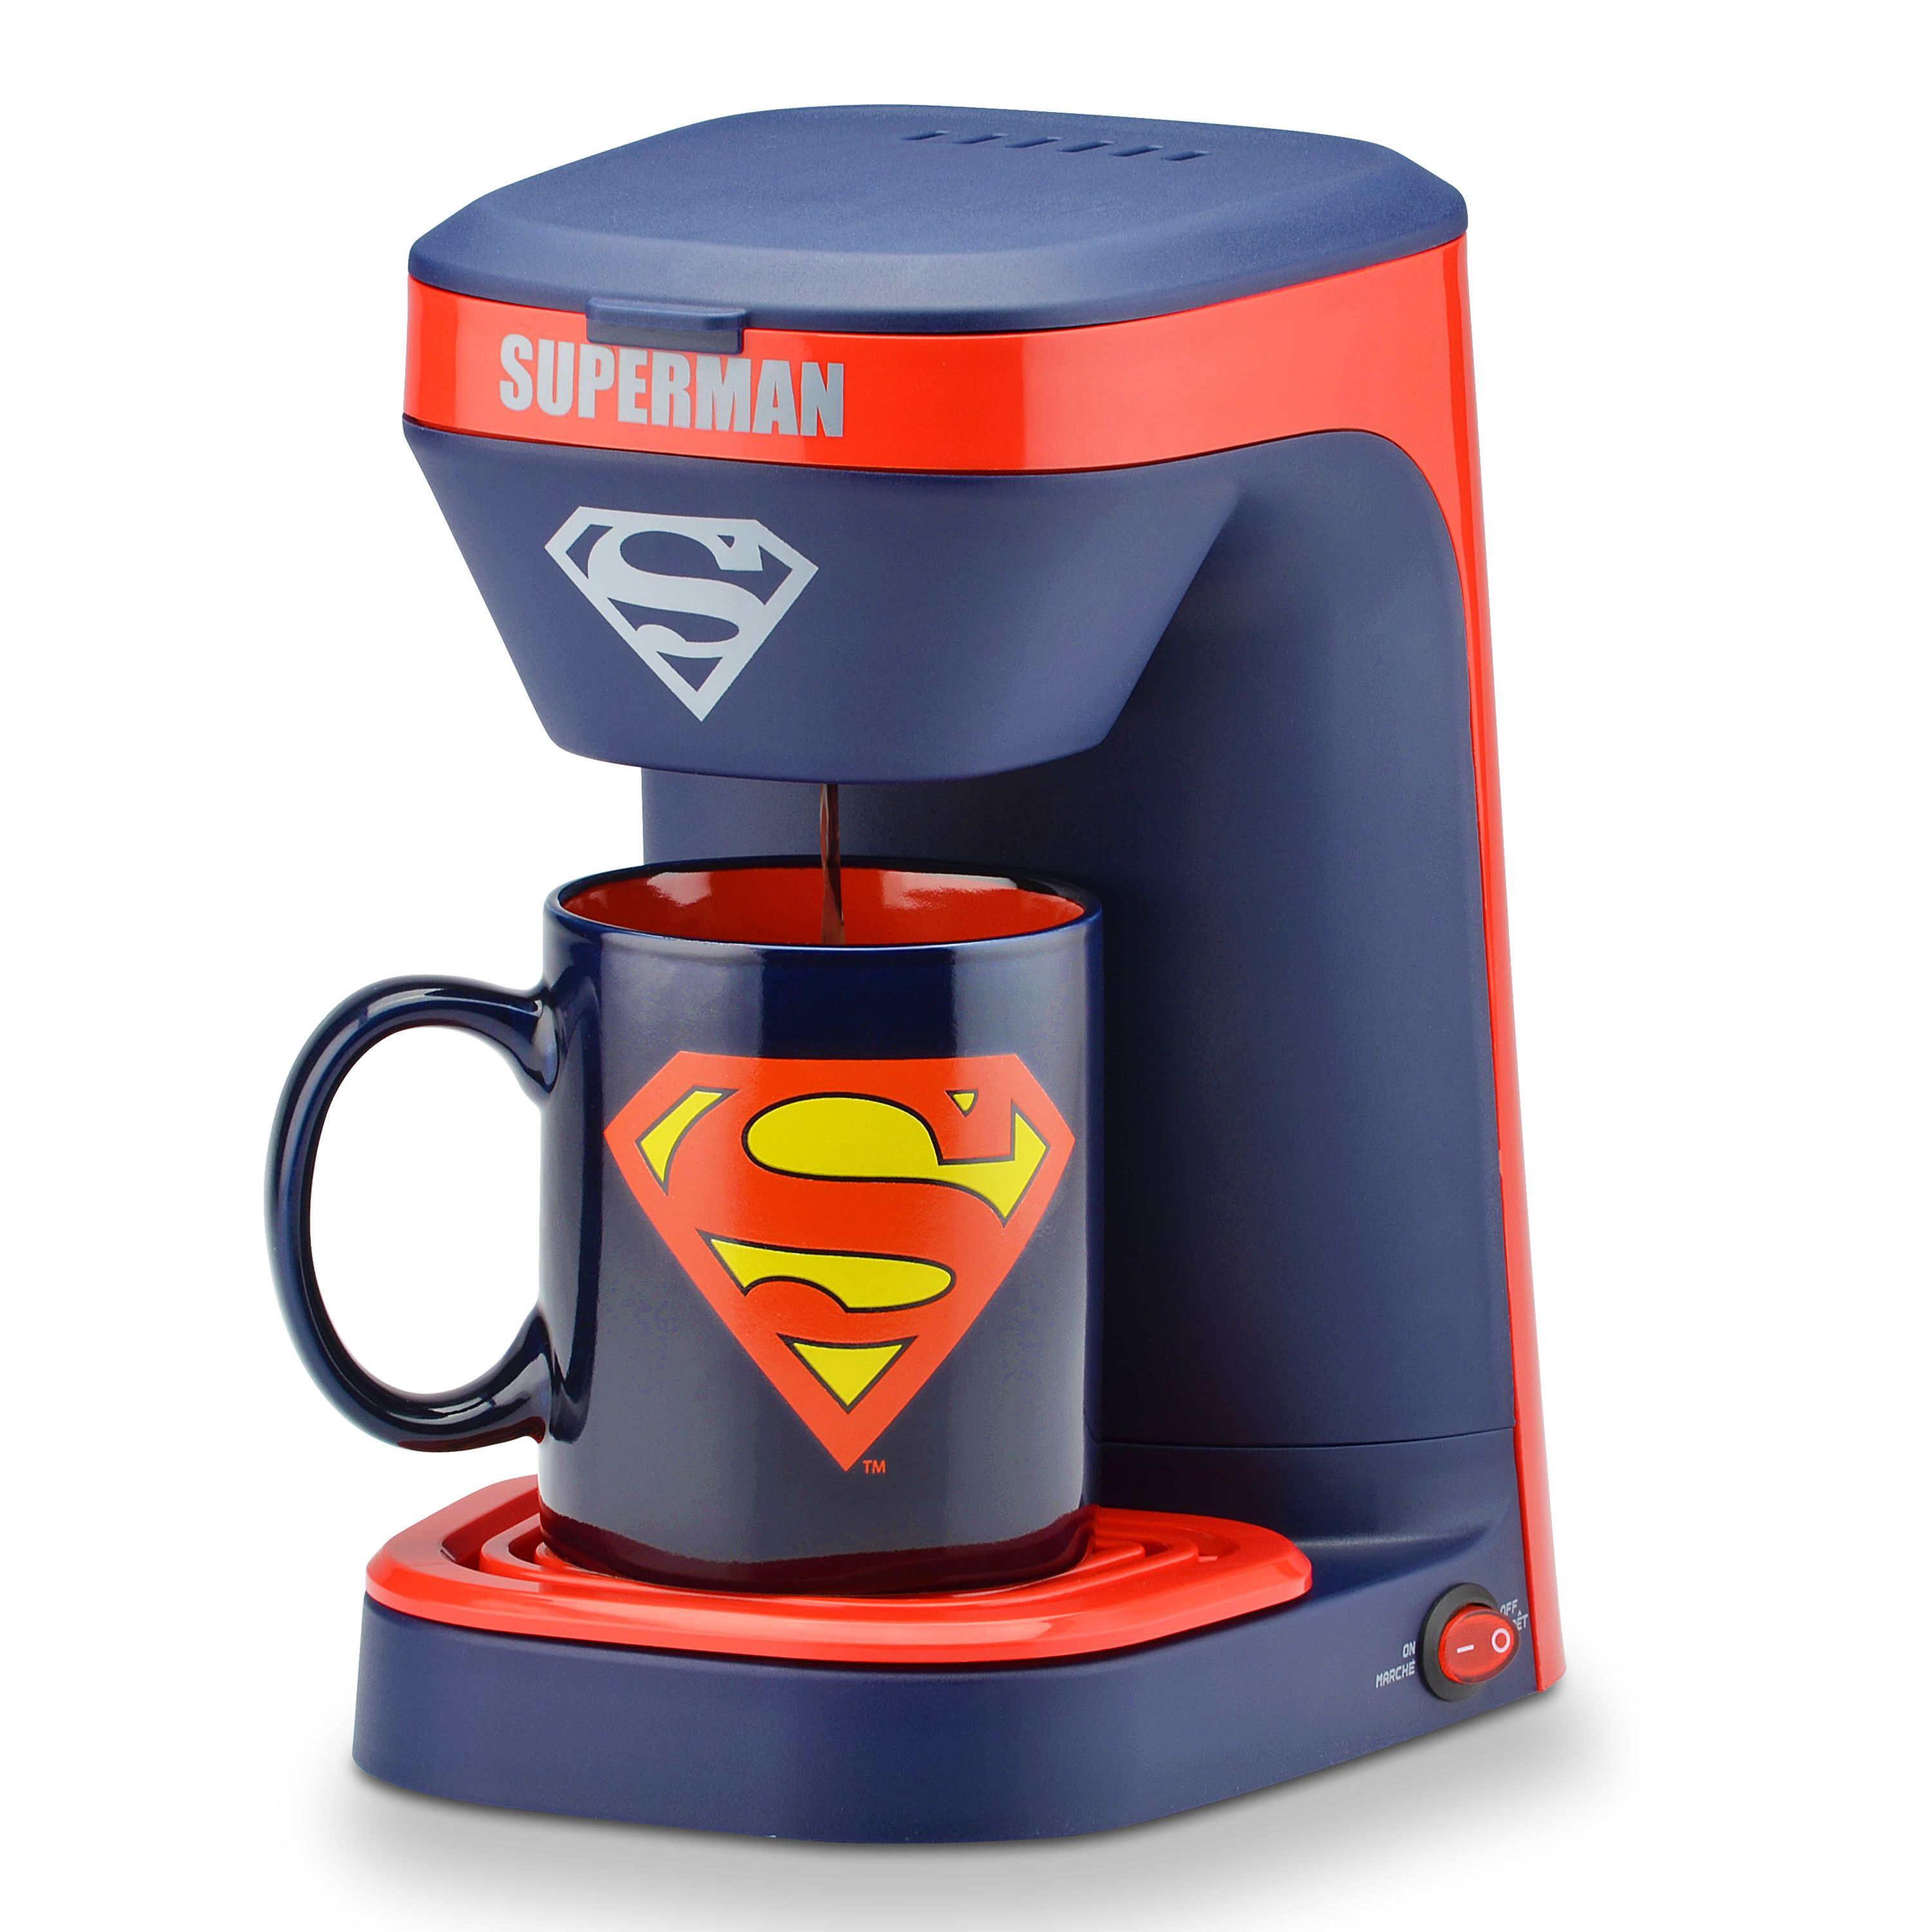 Home Single coffee maker, 1 cup coffee maker, One cup